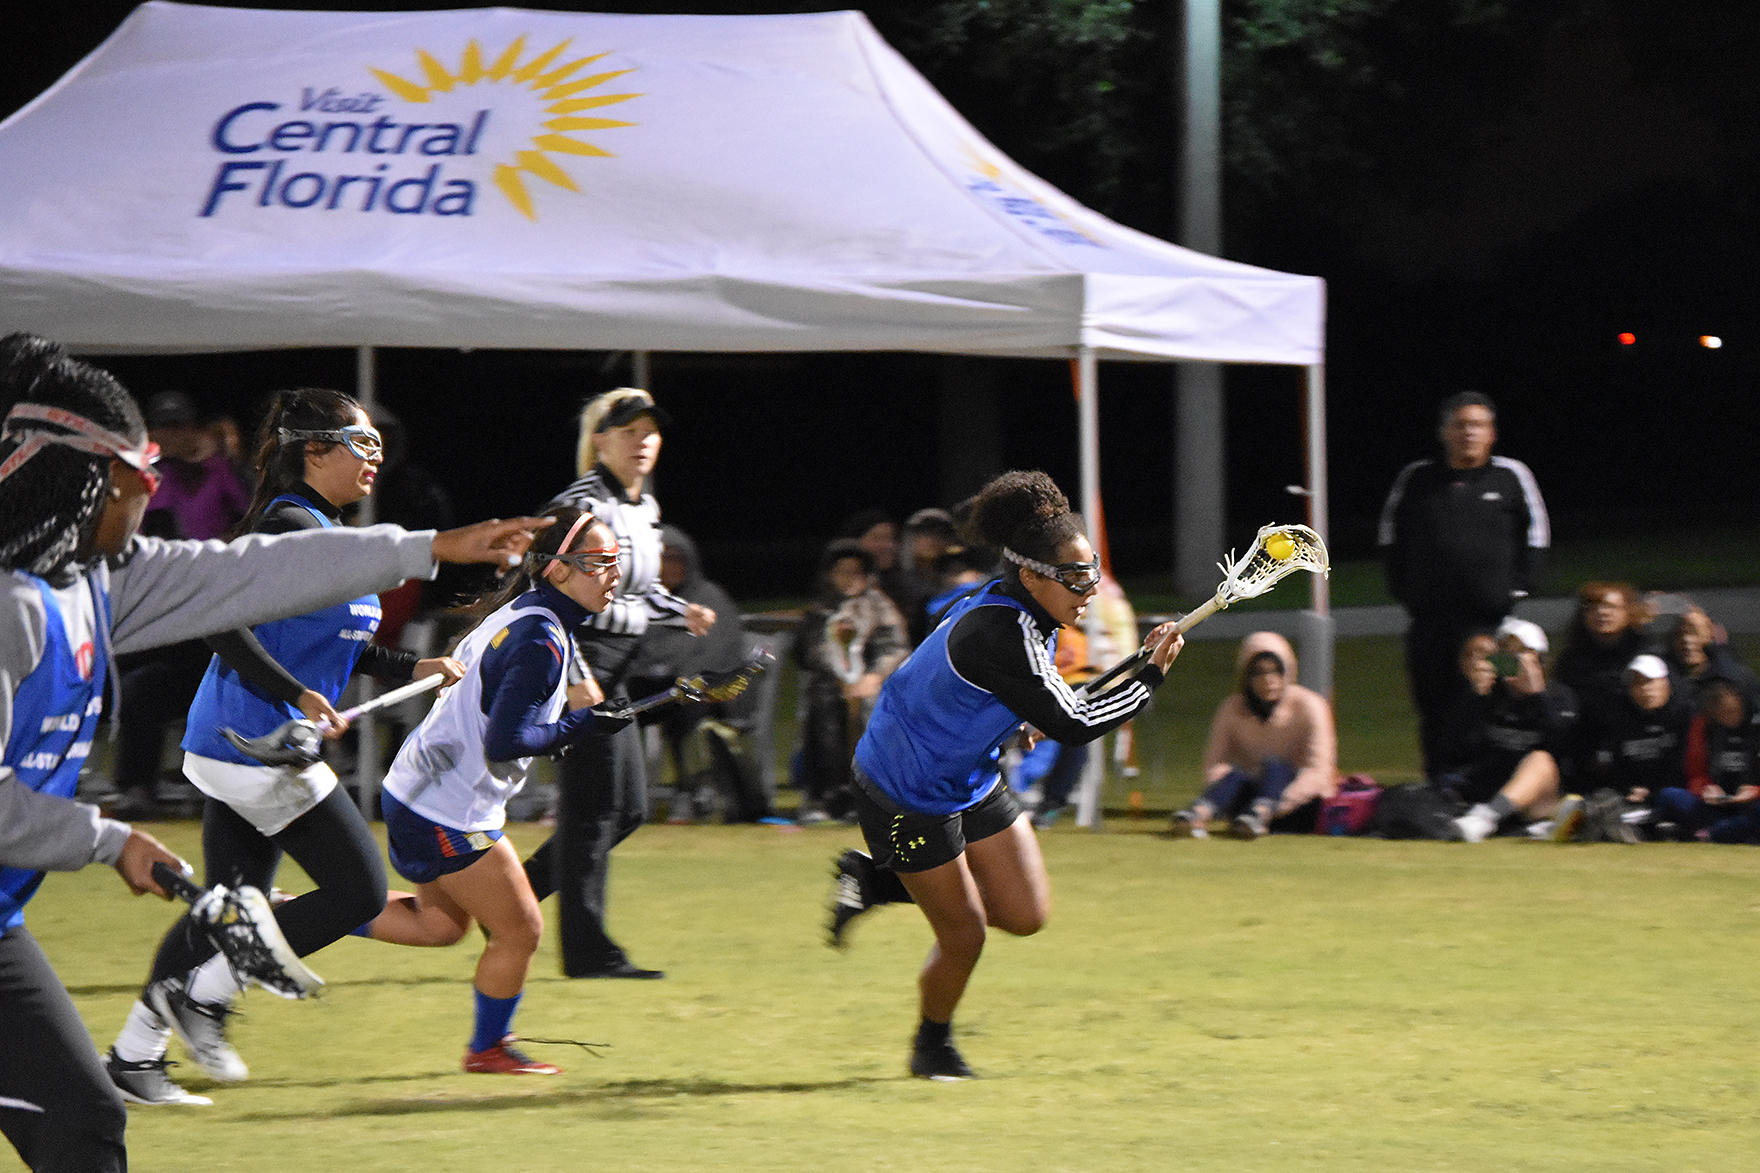 Pan American Lacrosse Association six on six game